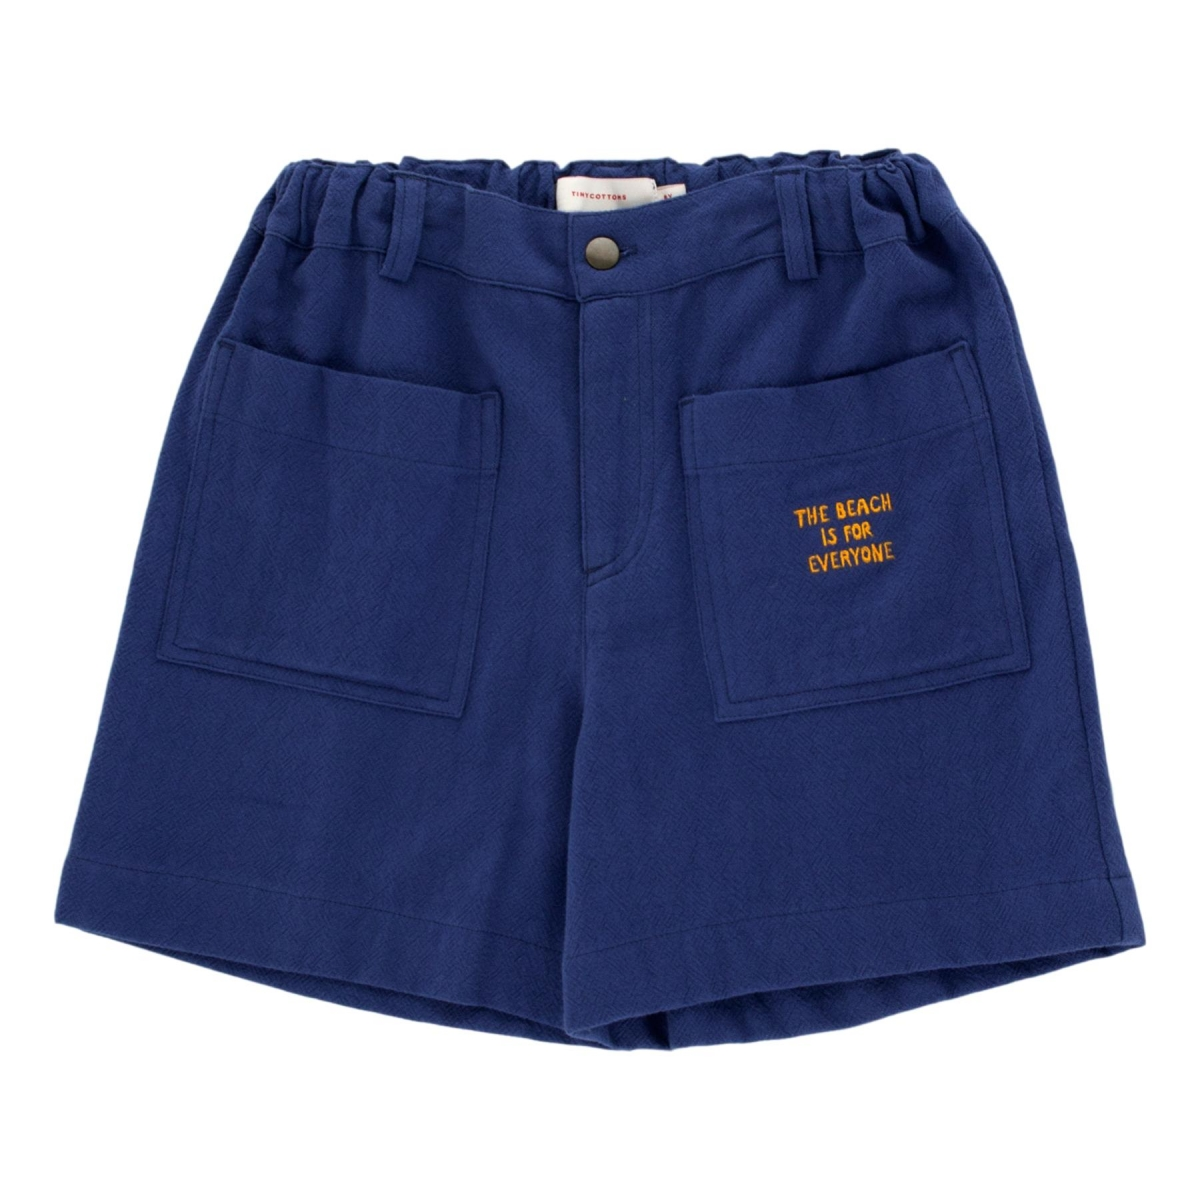 Tiny Cottons - Solid Retro Shorts blue - 1